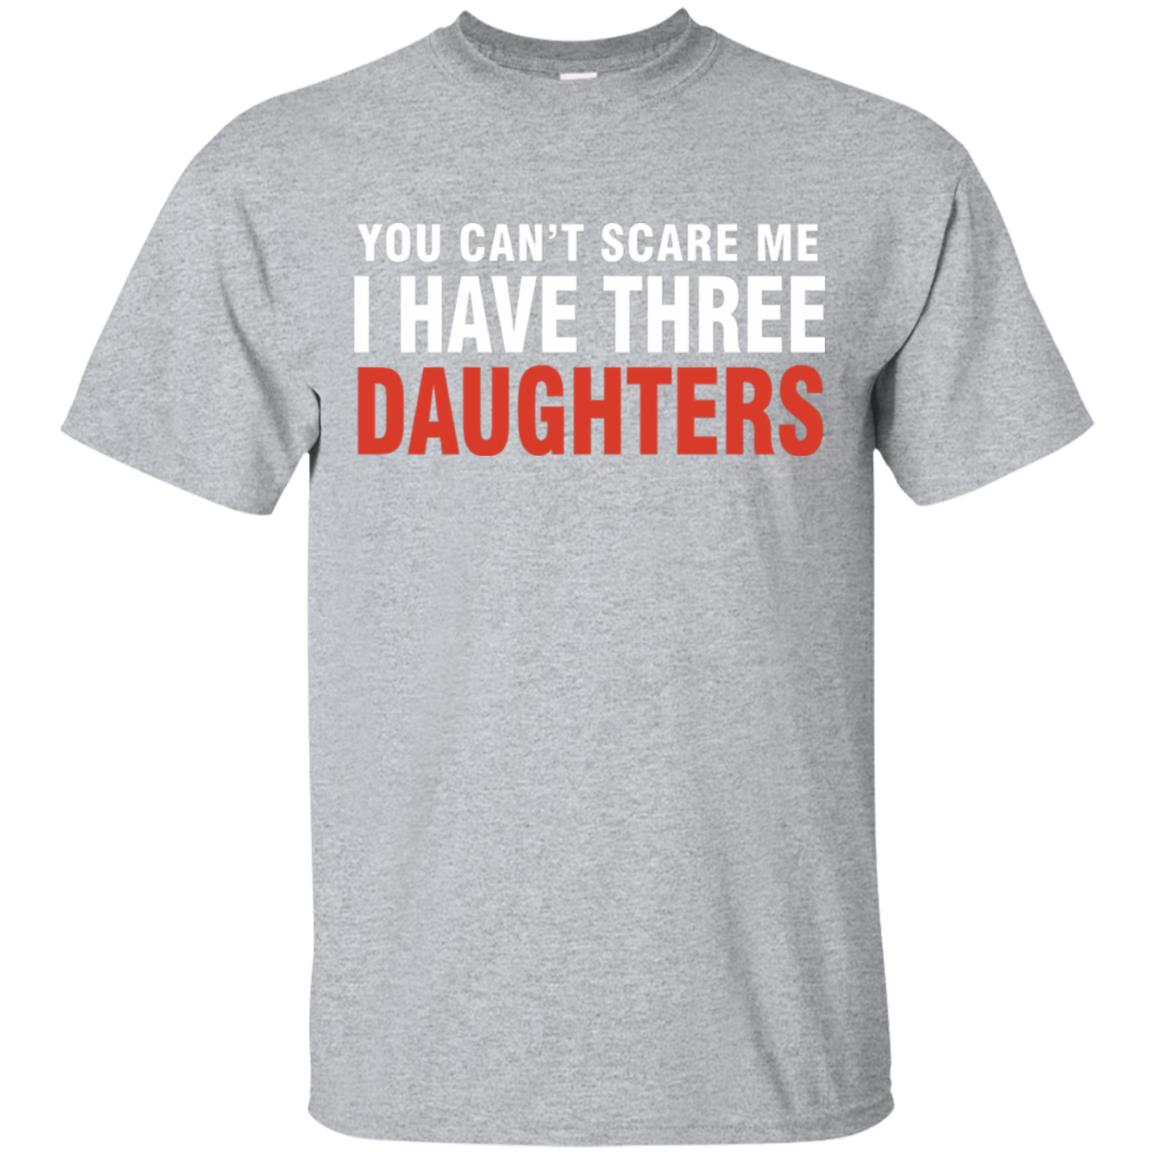 You Can't Scare Me I Have Three Daughters T-Shirt 99promocode